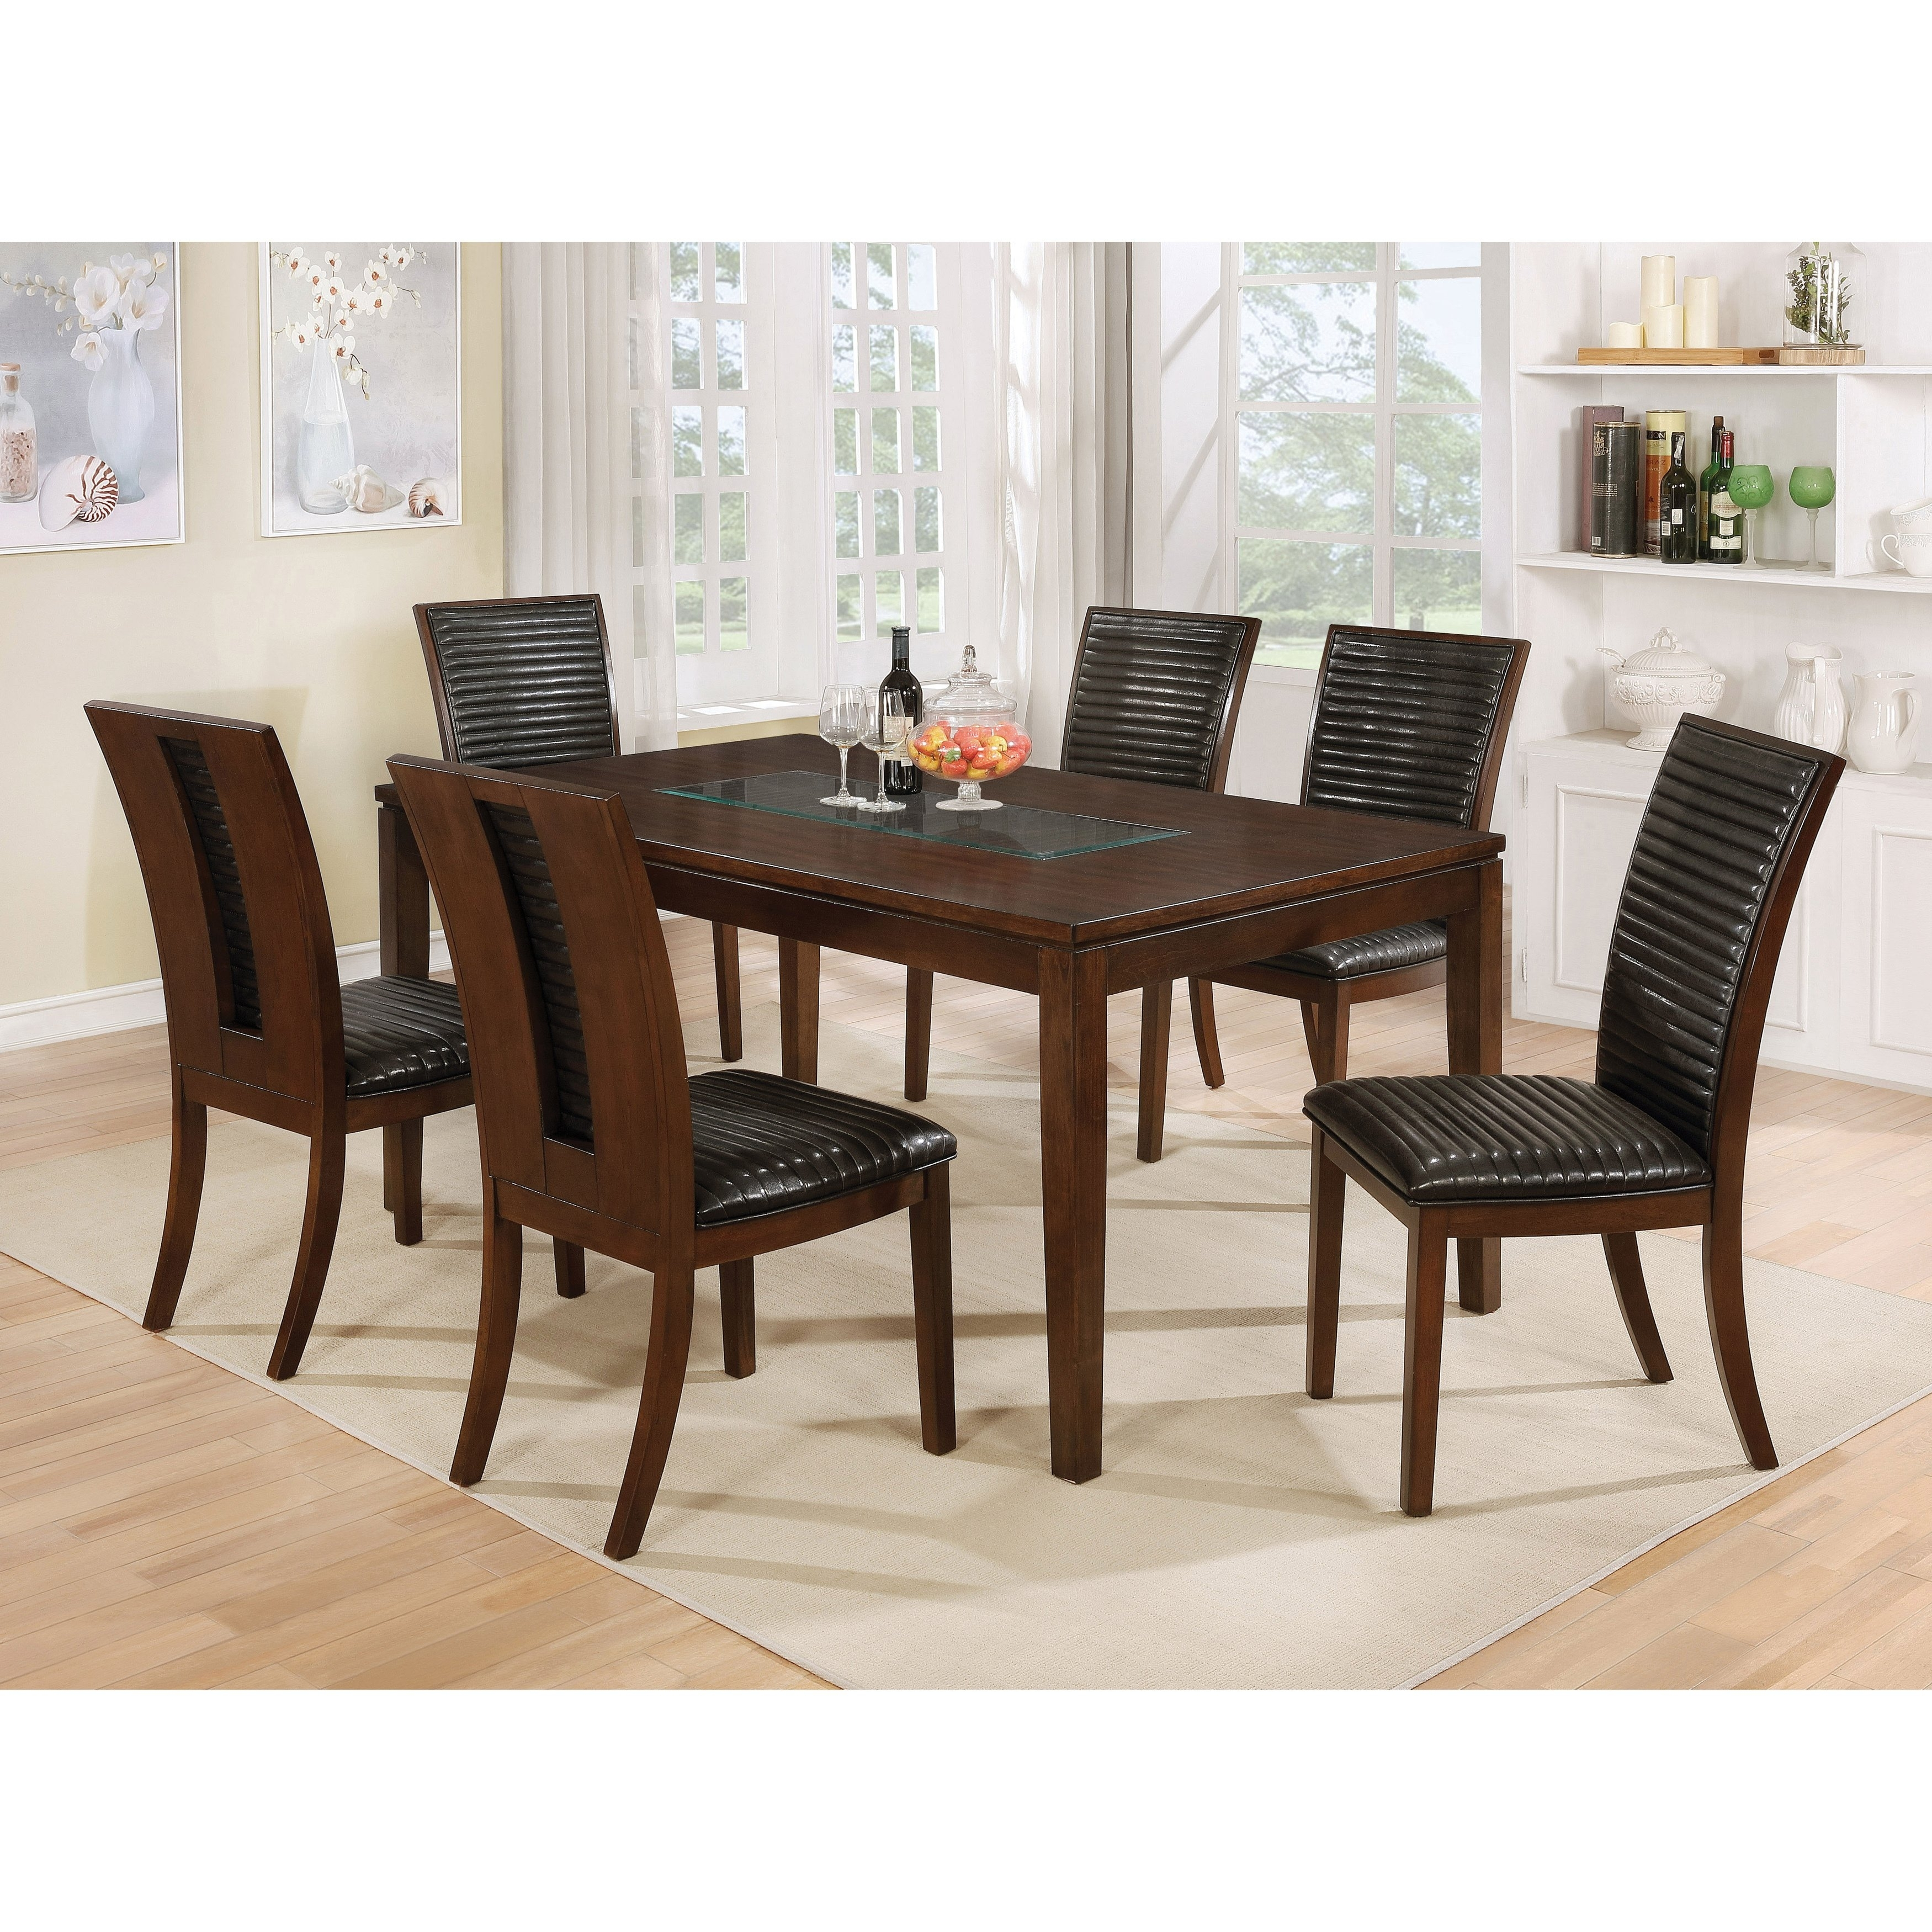 Shop Furniture Of America Gileon Walnut/ Espresso Wood Transitional For Newest Leon 7 Piece Dining Sets (View 3 of 20)